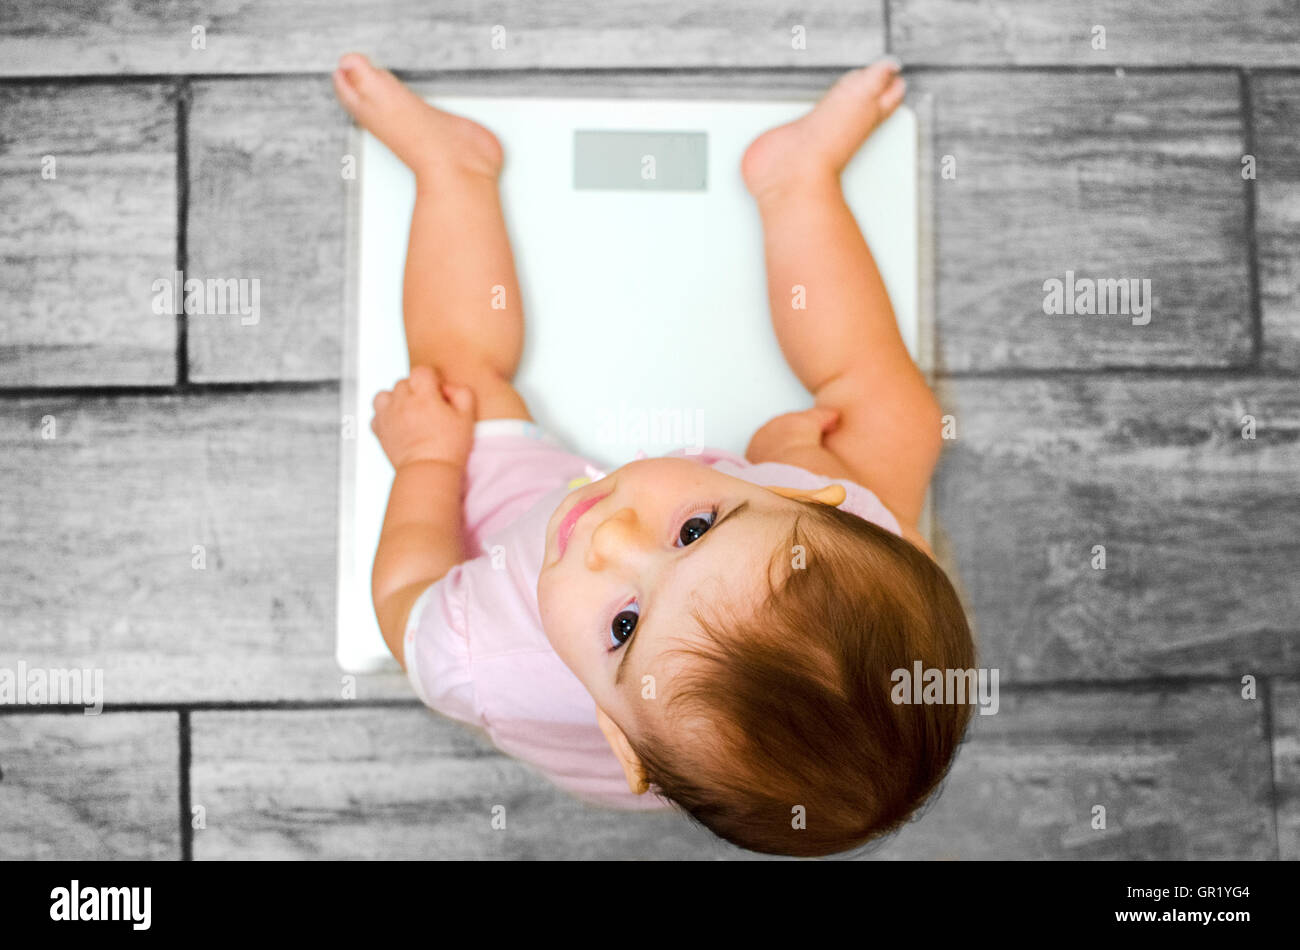 baby weight scale - Stock Image